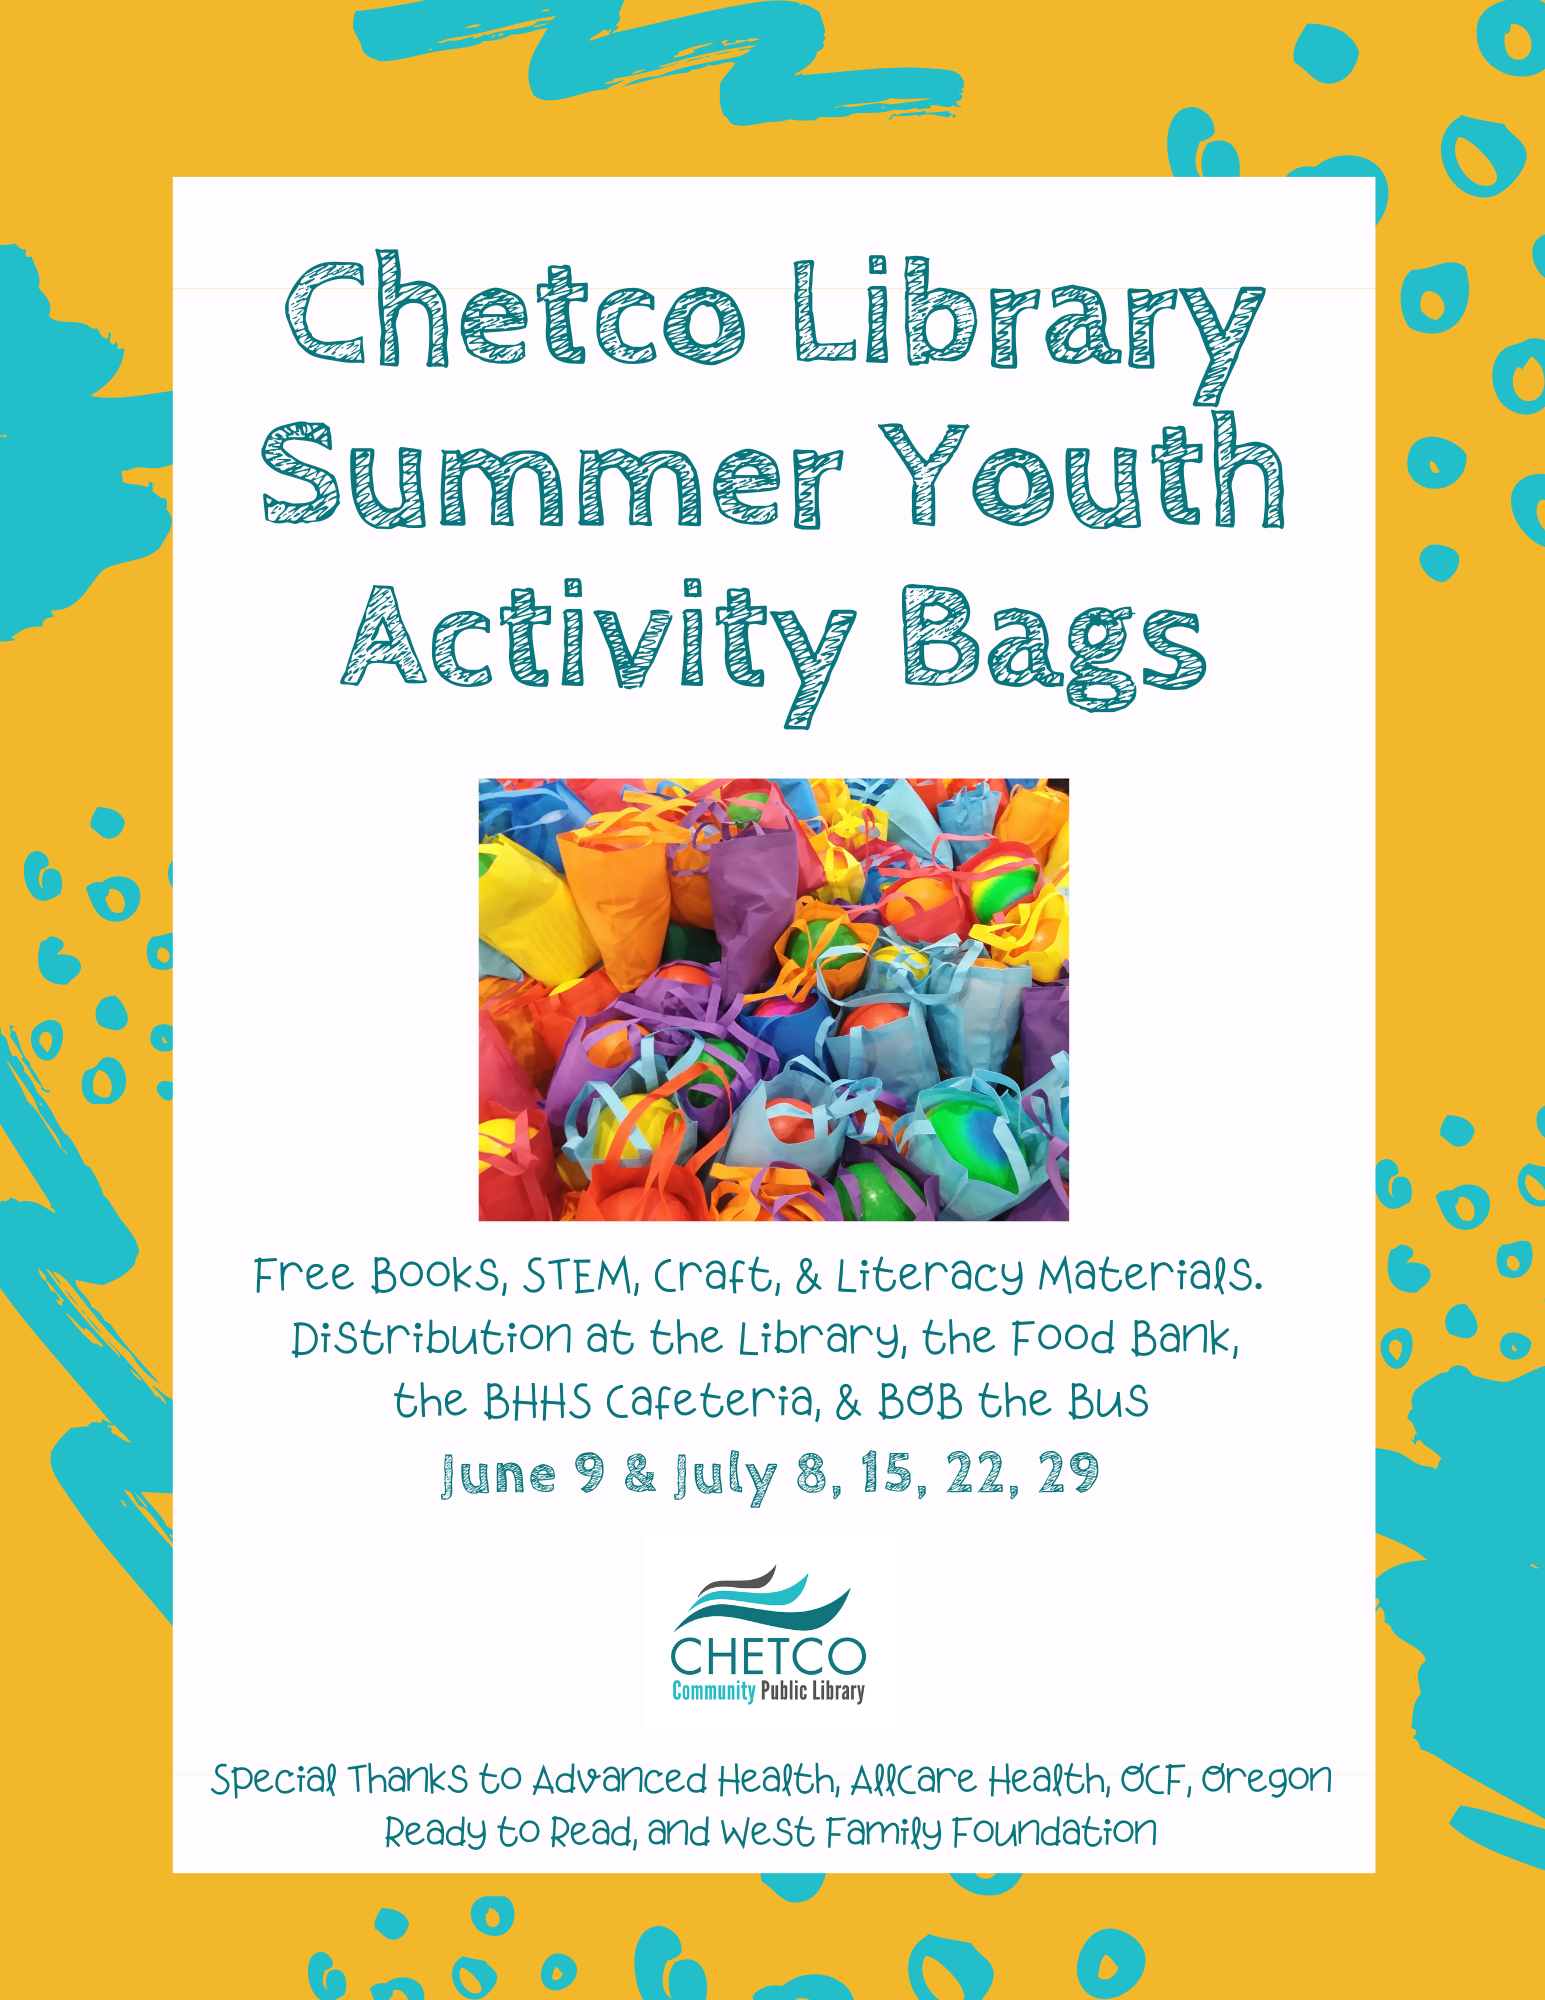 Youth Activity Summer Bags